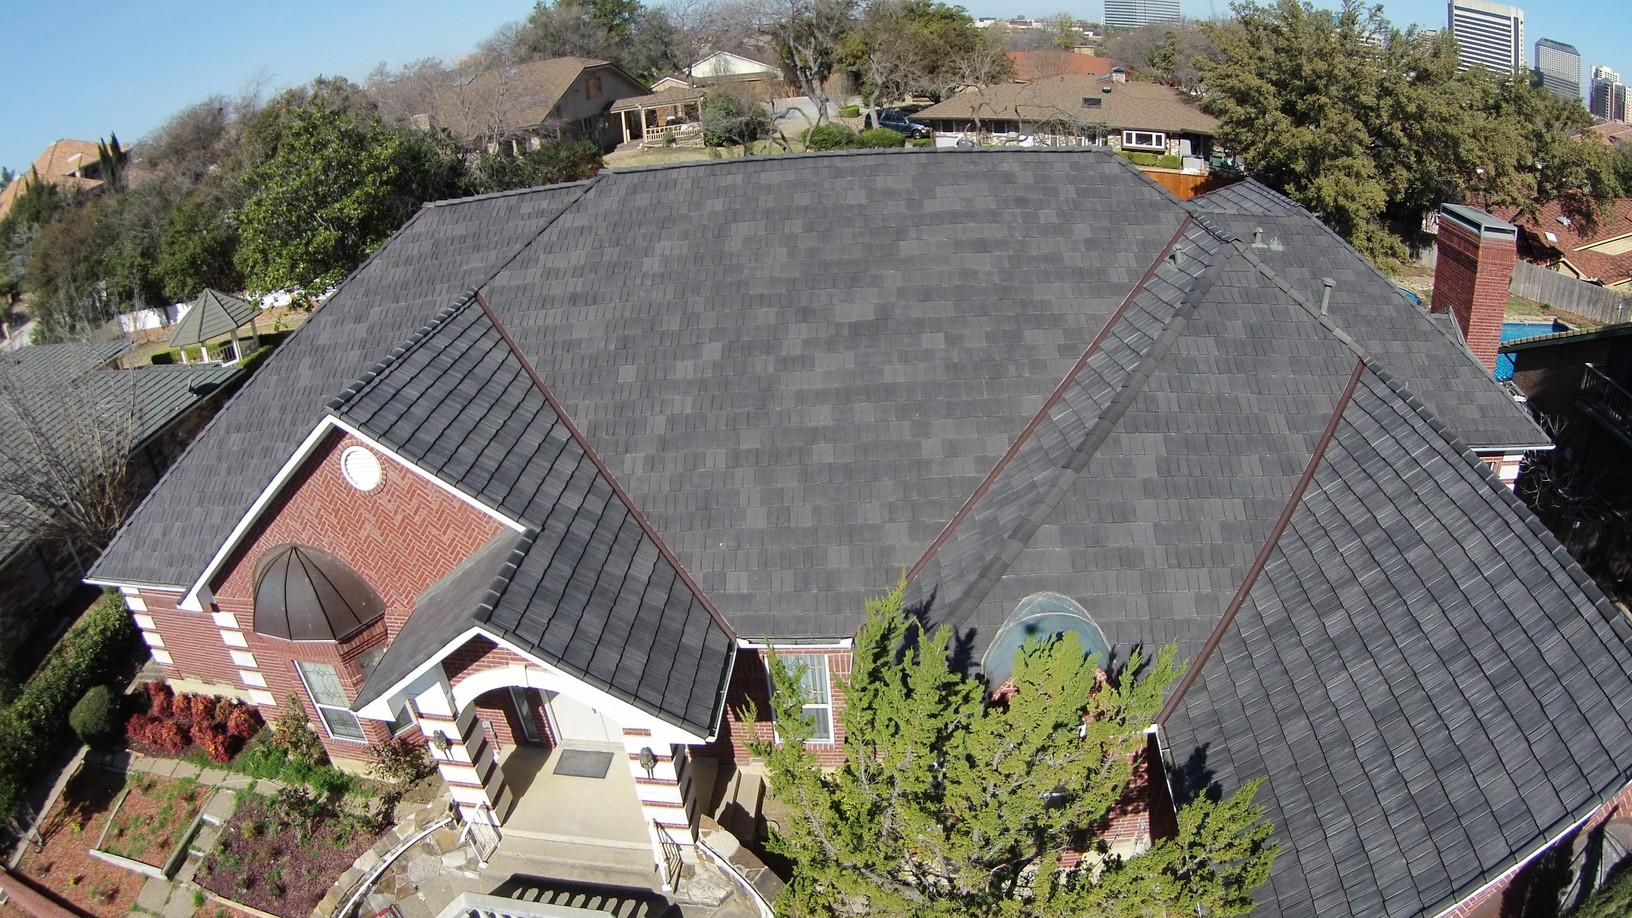 Drone View of the Roof